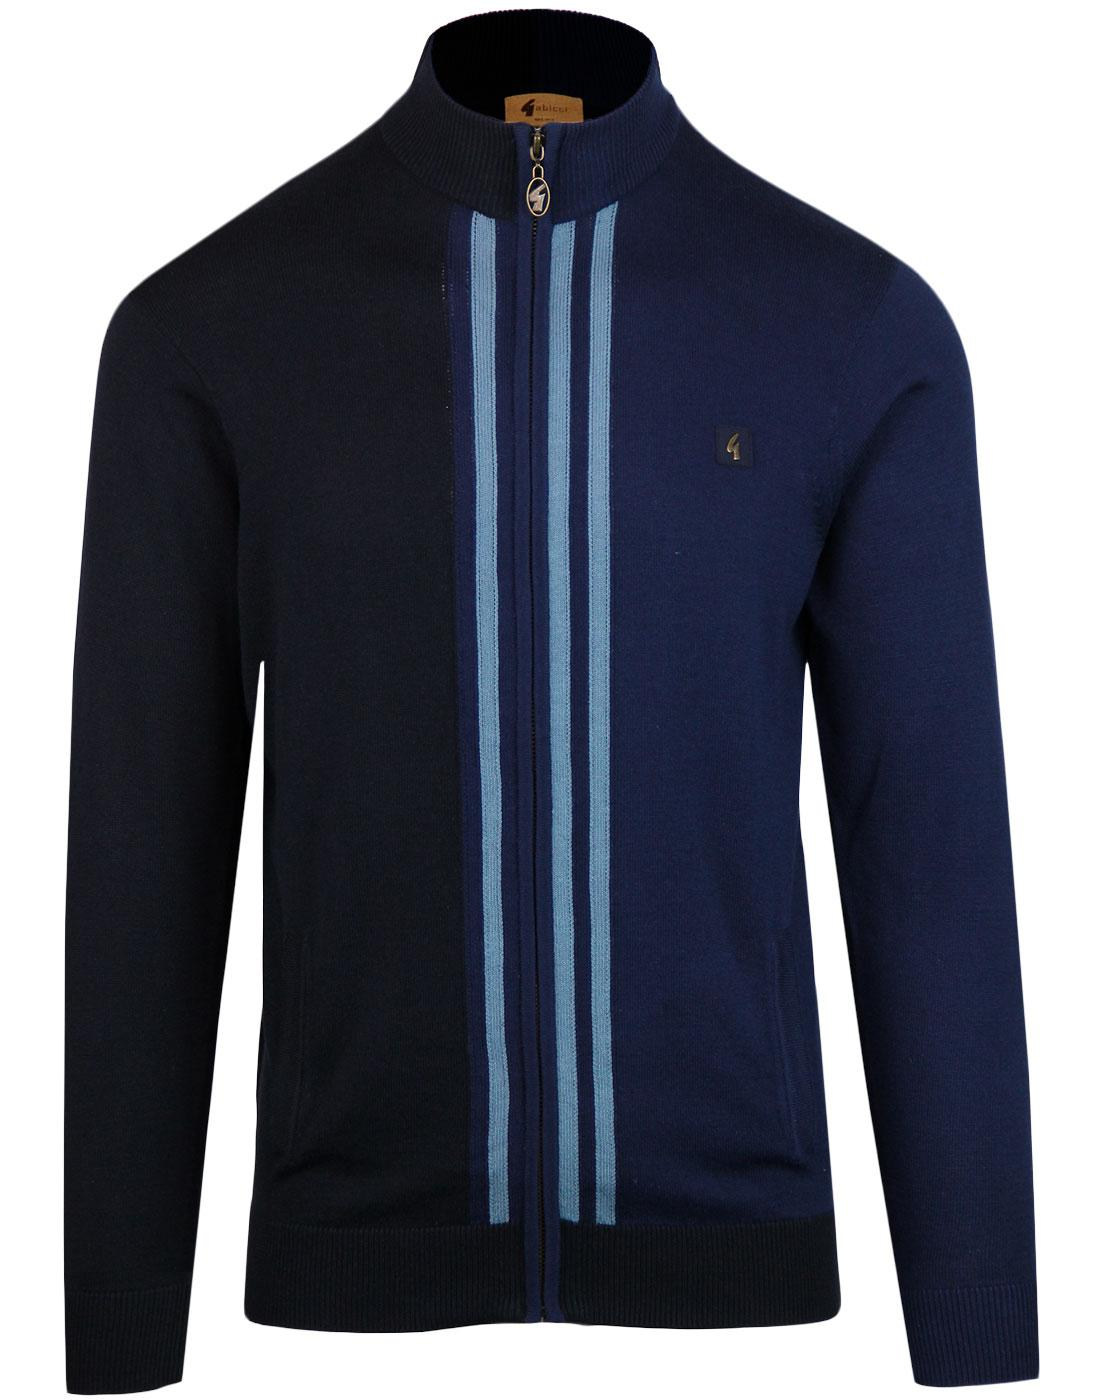 Brighton GABICCI VINTAGE Retro Knit Track Top NAVY